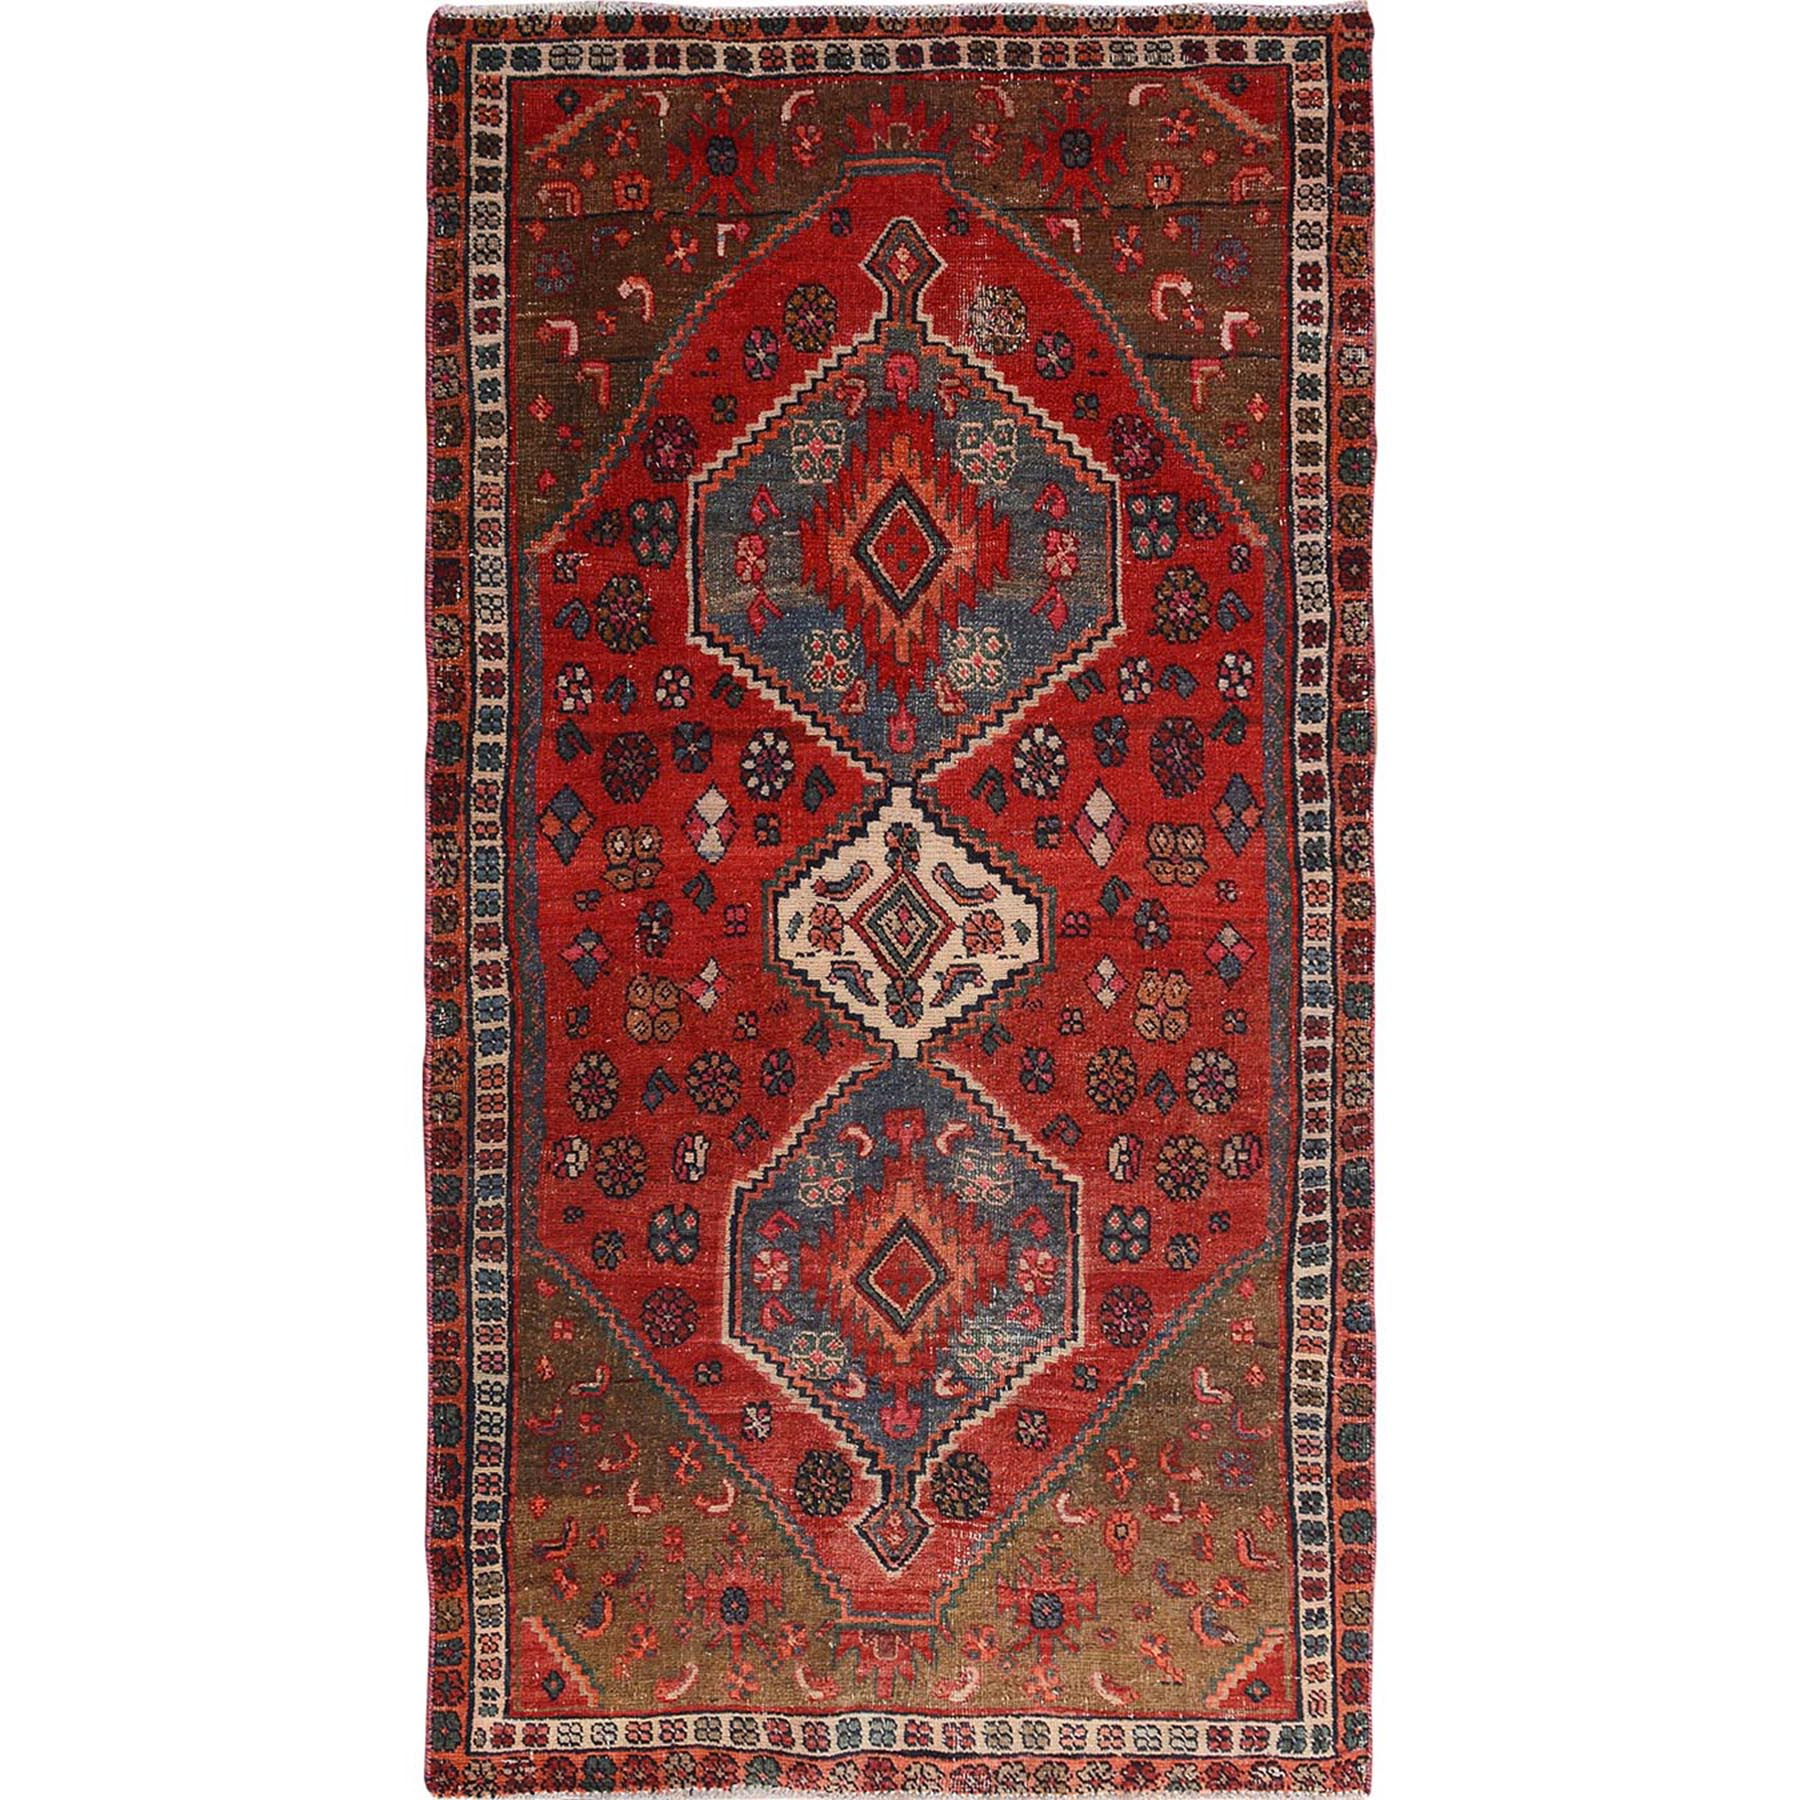 "4'x7'3"" Red Vintage And Worn Down Persian Afshar Wide Runner Pure Wool Hand Woven Oriental Rug"